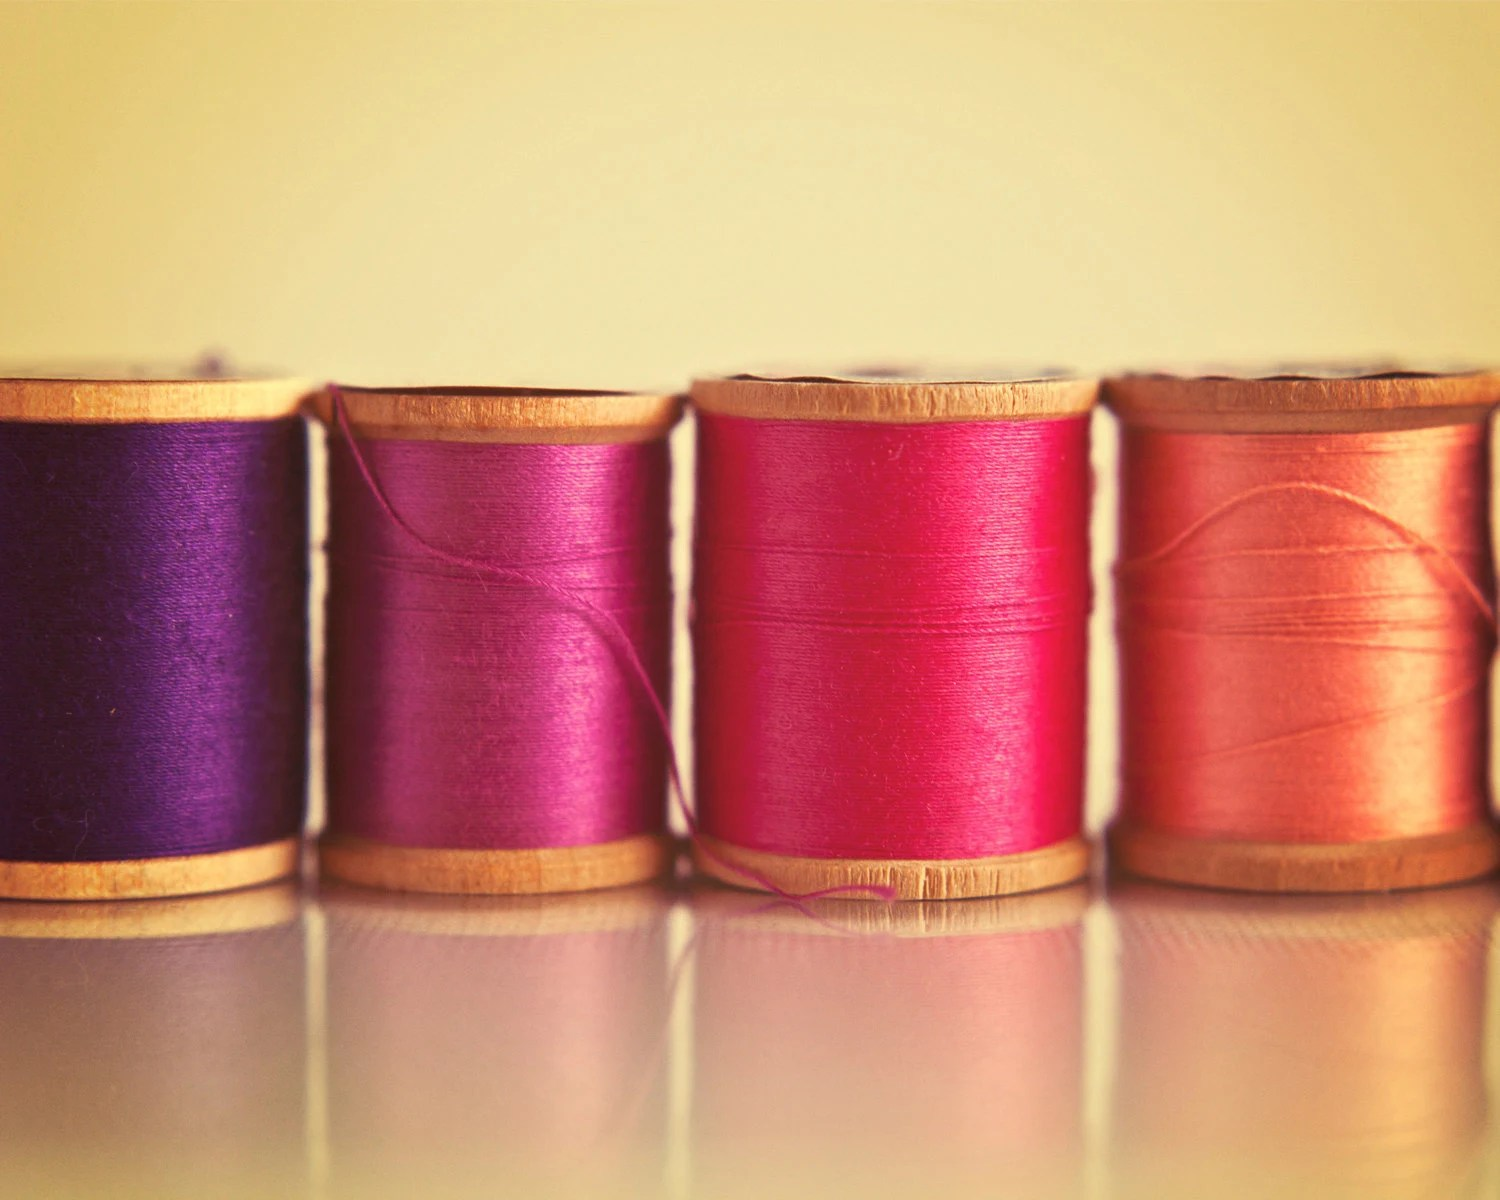 Sewing Thread Photography - 8x10 - Vintage Wooden Spools - Metallic Fine Art Print - Pink Orange Purple - Craft Room or Office - Colorful - GardenBlues